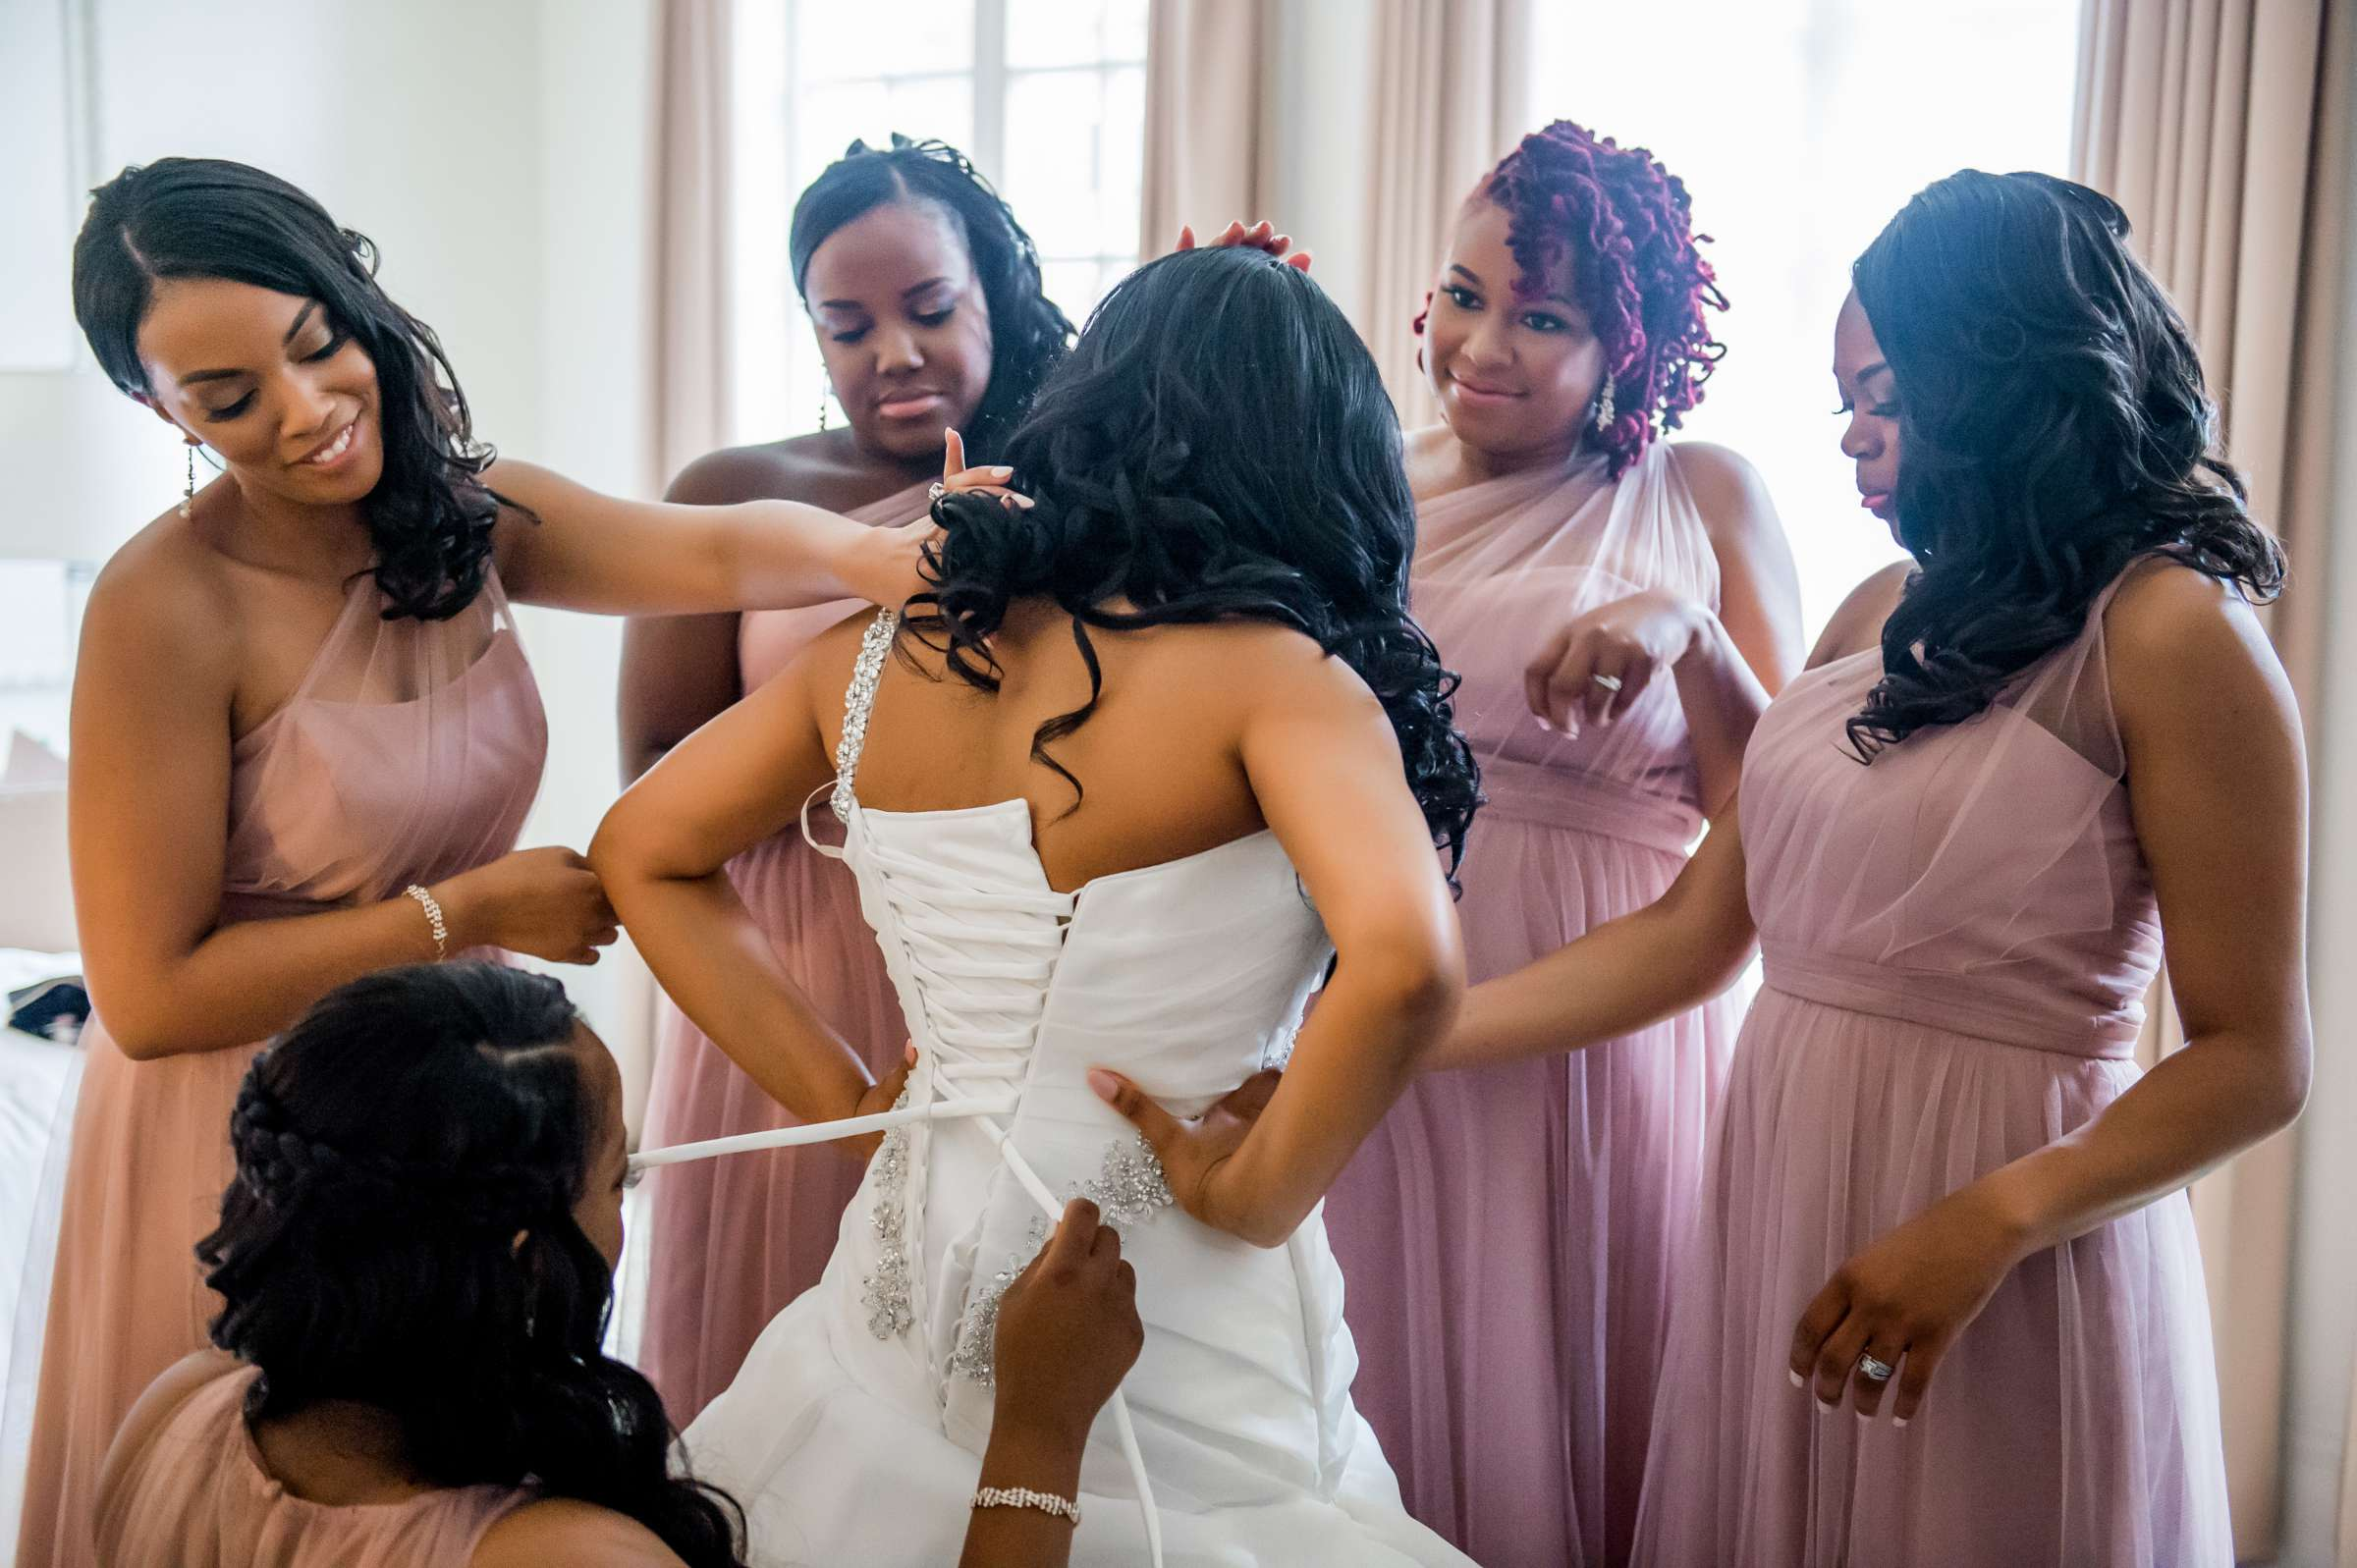 Coronado Community Center Wedding coordinated by First Comes Love Weddings & Events, Nikia and Charles Wedding Photo #18 by True Photography